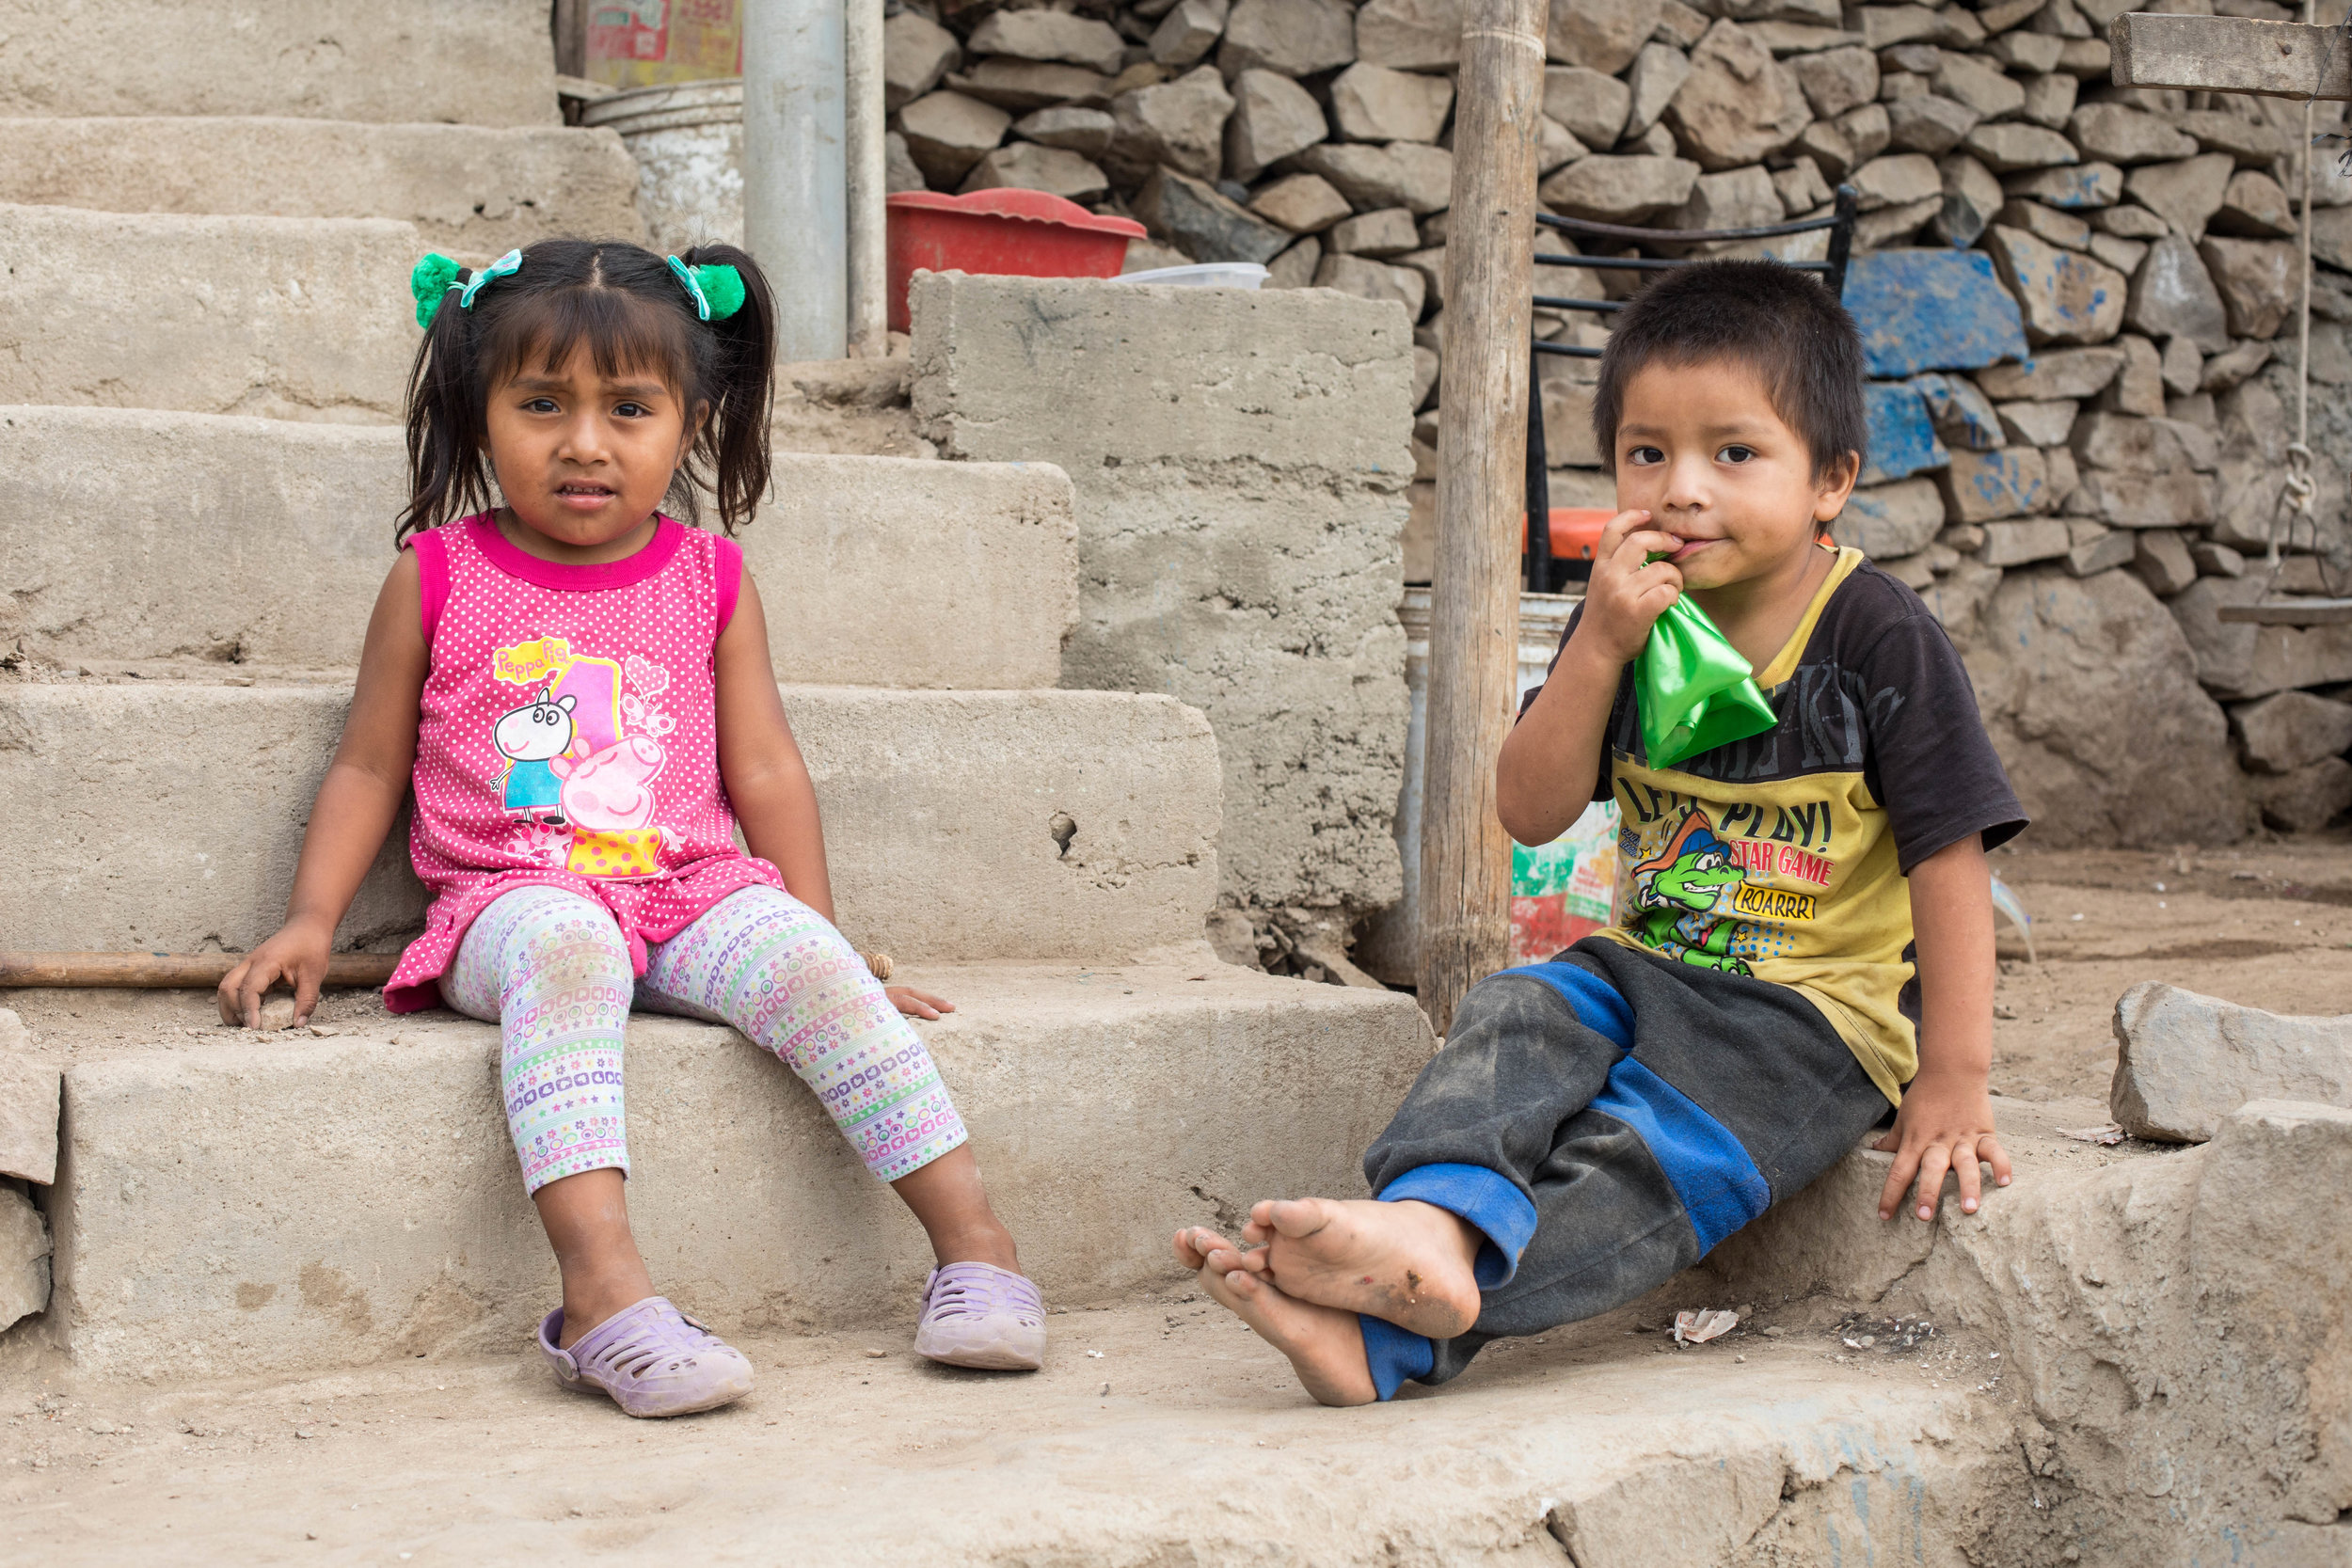 Cute Peruvian kids in one of the communities supported by Reciprocity NGO, Lima, Peru.